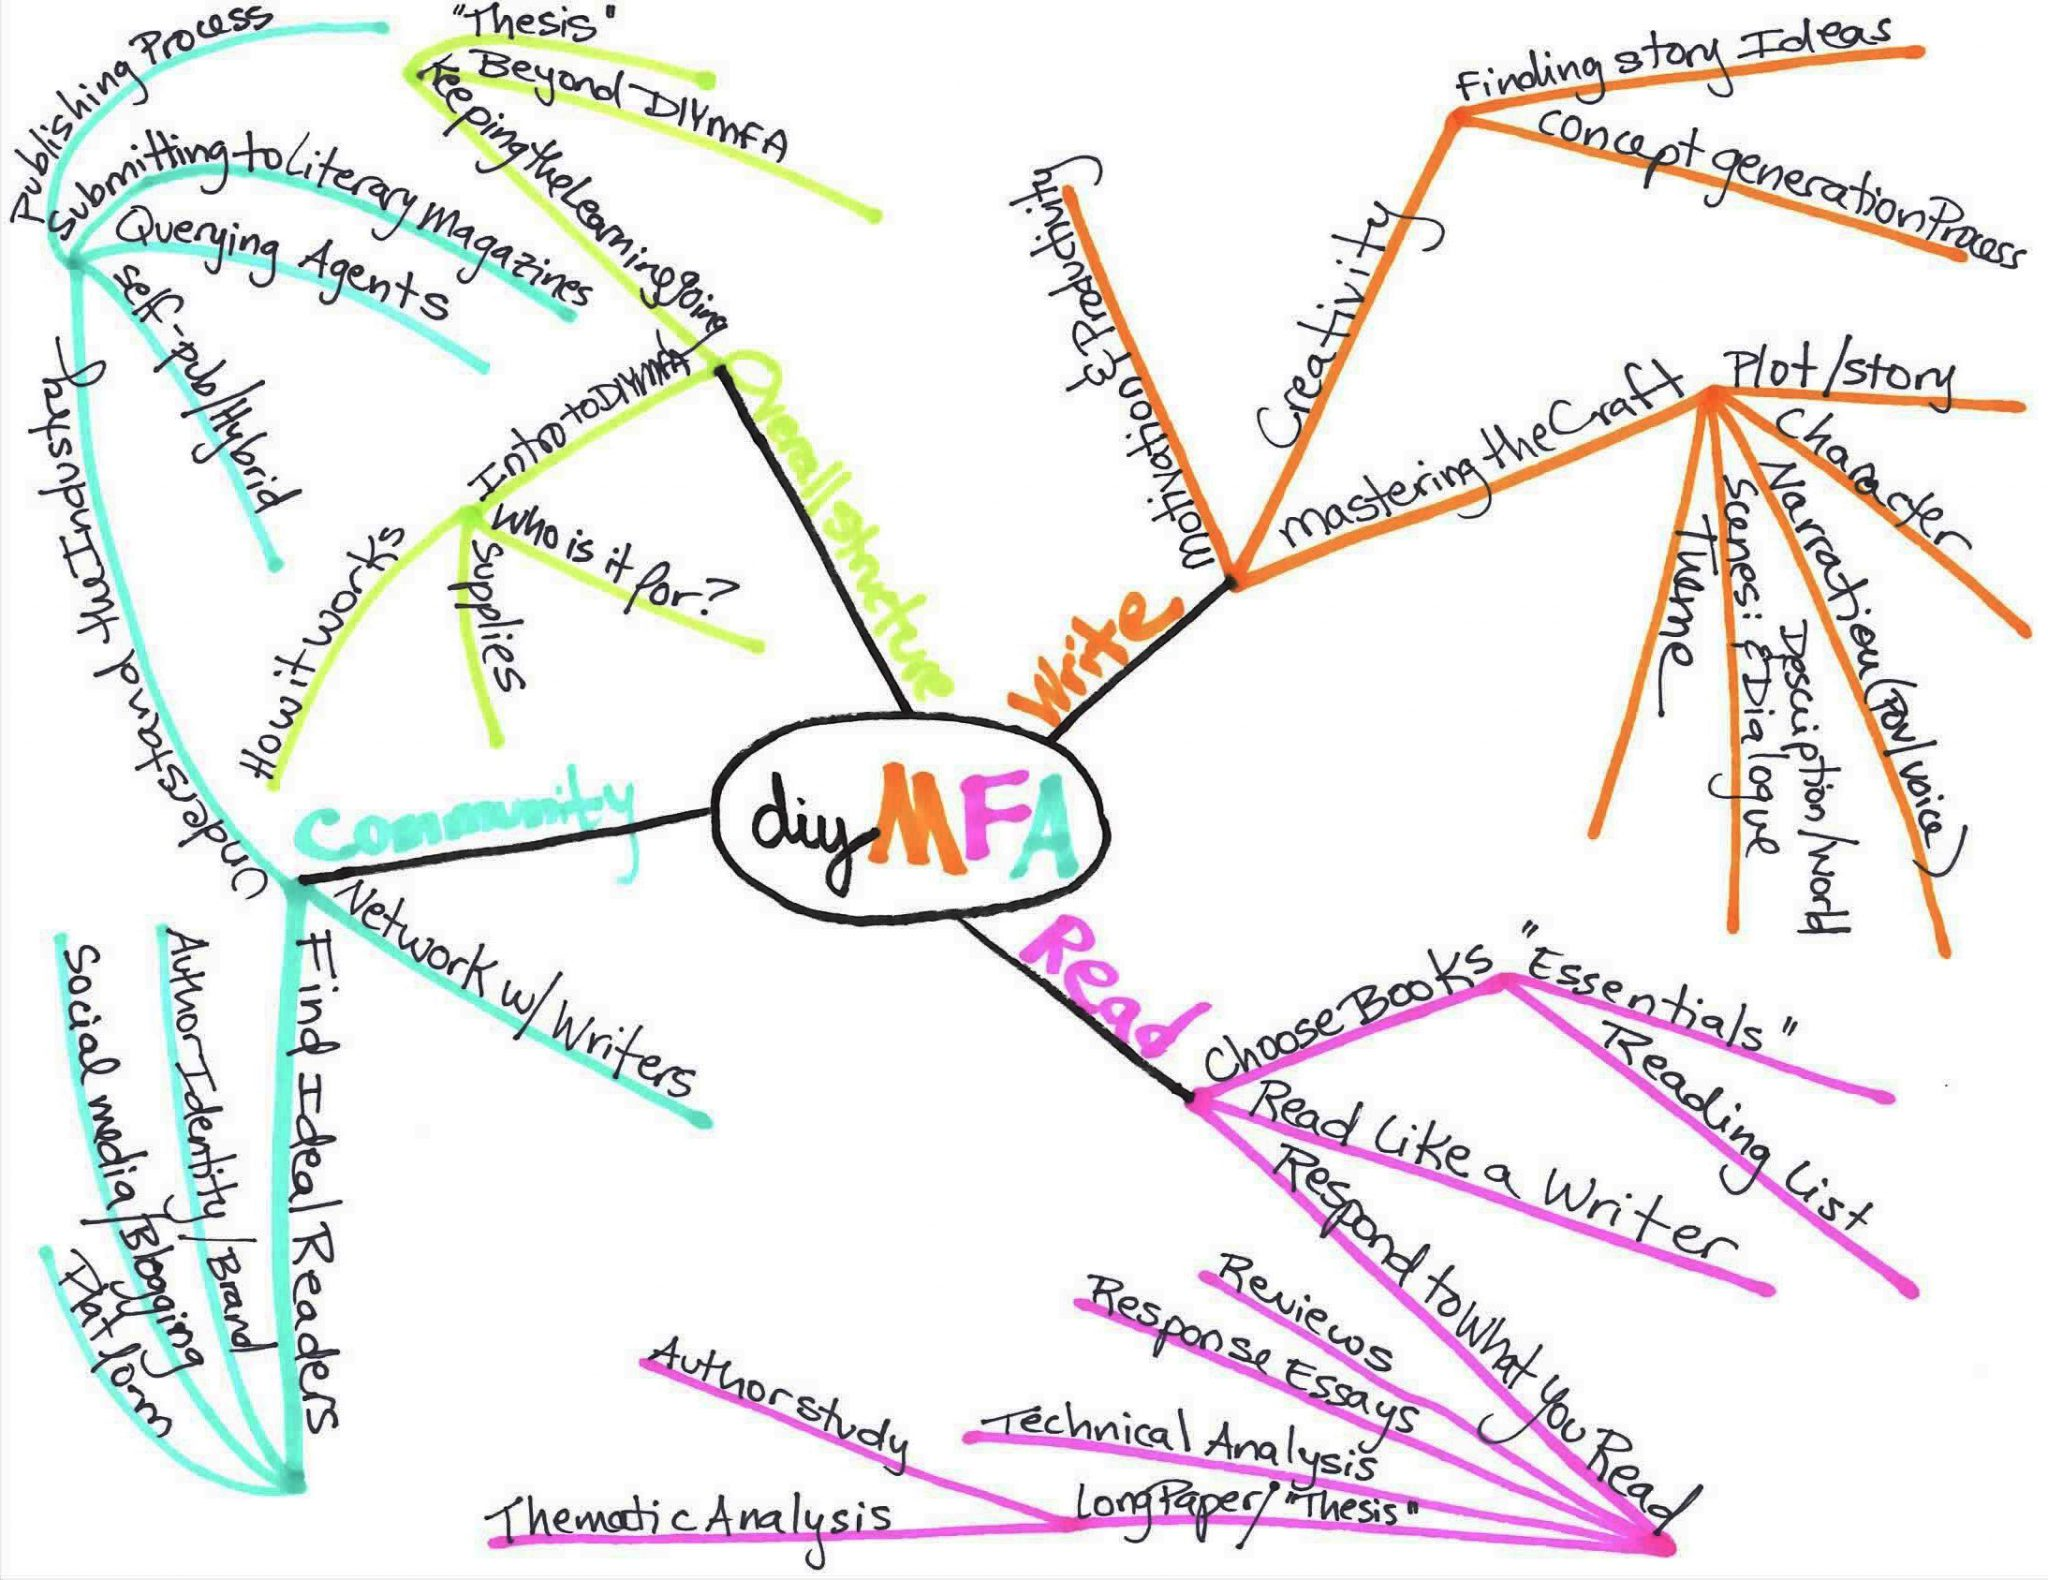 Concept Map Book.Biz To Book Part 2 How To Bookify Your Business By Diymfa She